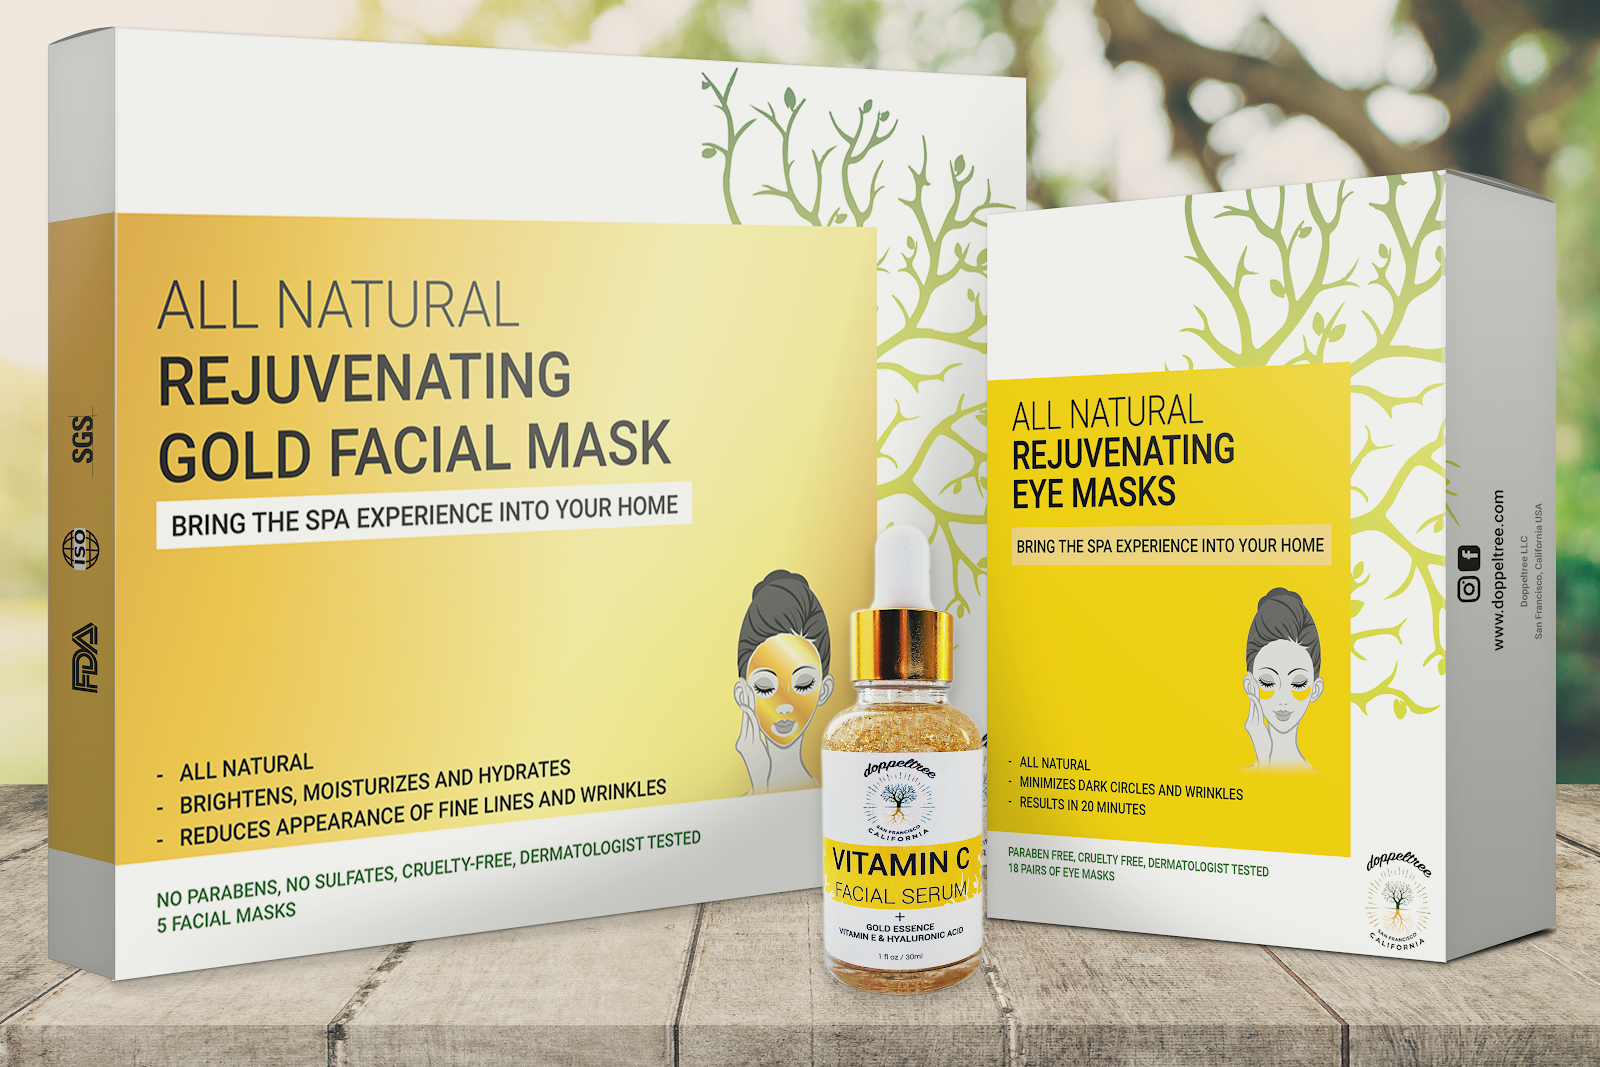 how-we-started-a-40k-month-side-hustle-selling-all-natural-self-care-products